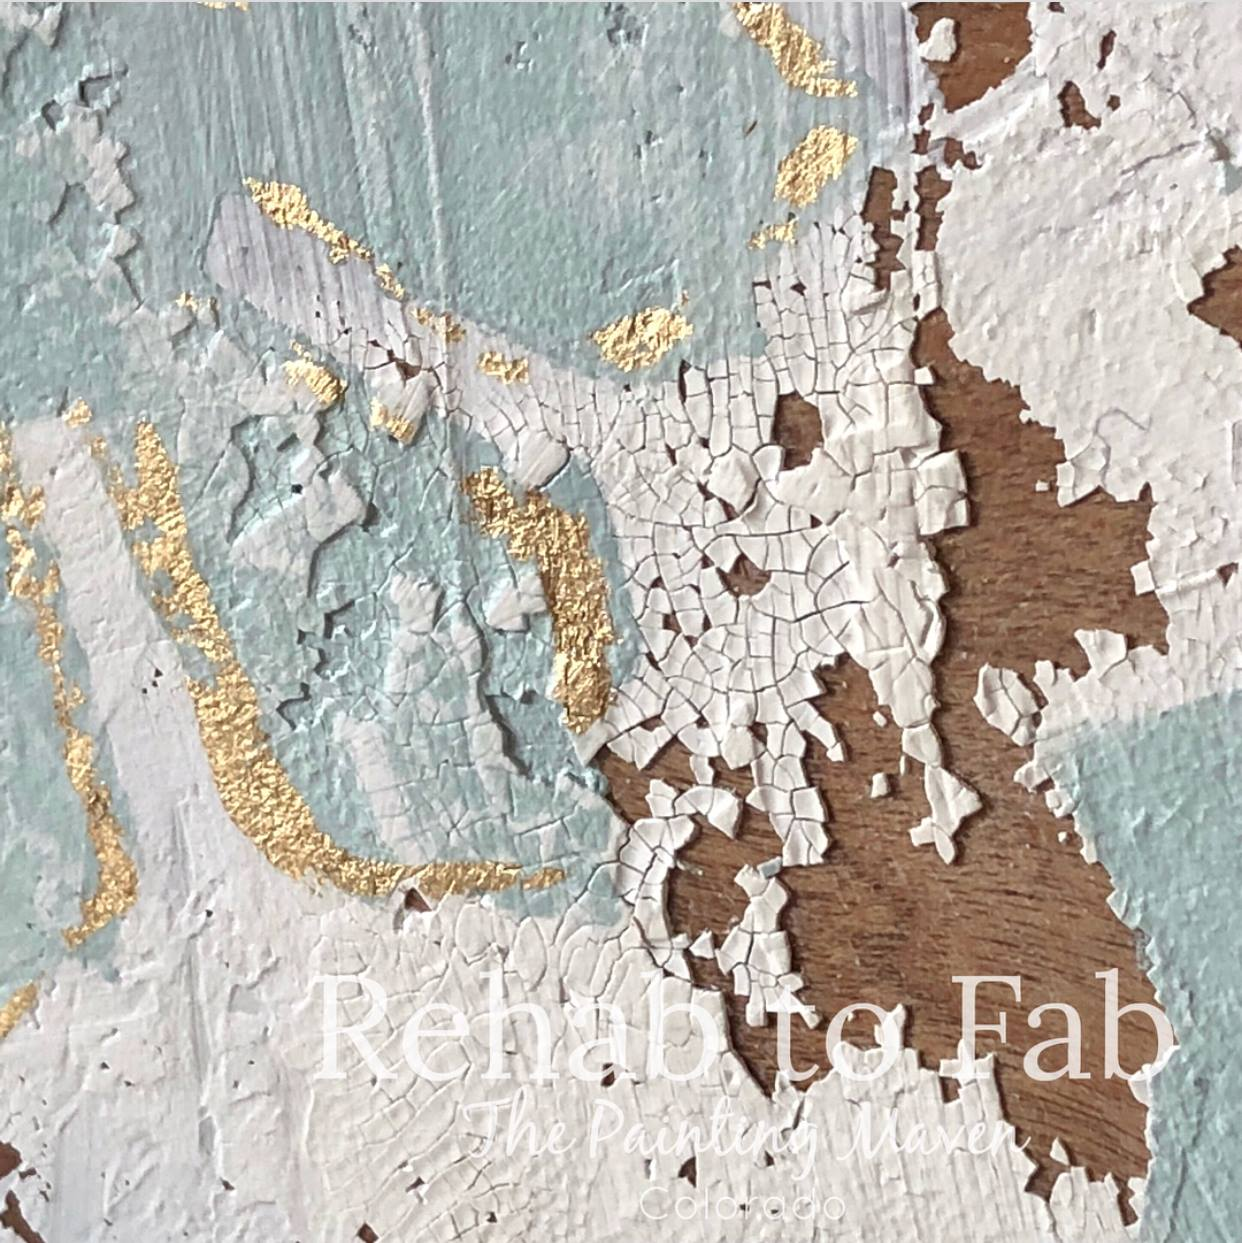 Here is another close up of the surface with the mediums all working together for a unique and goreous finish...